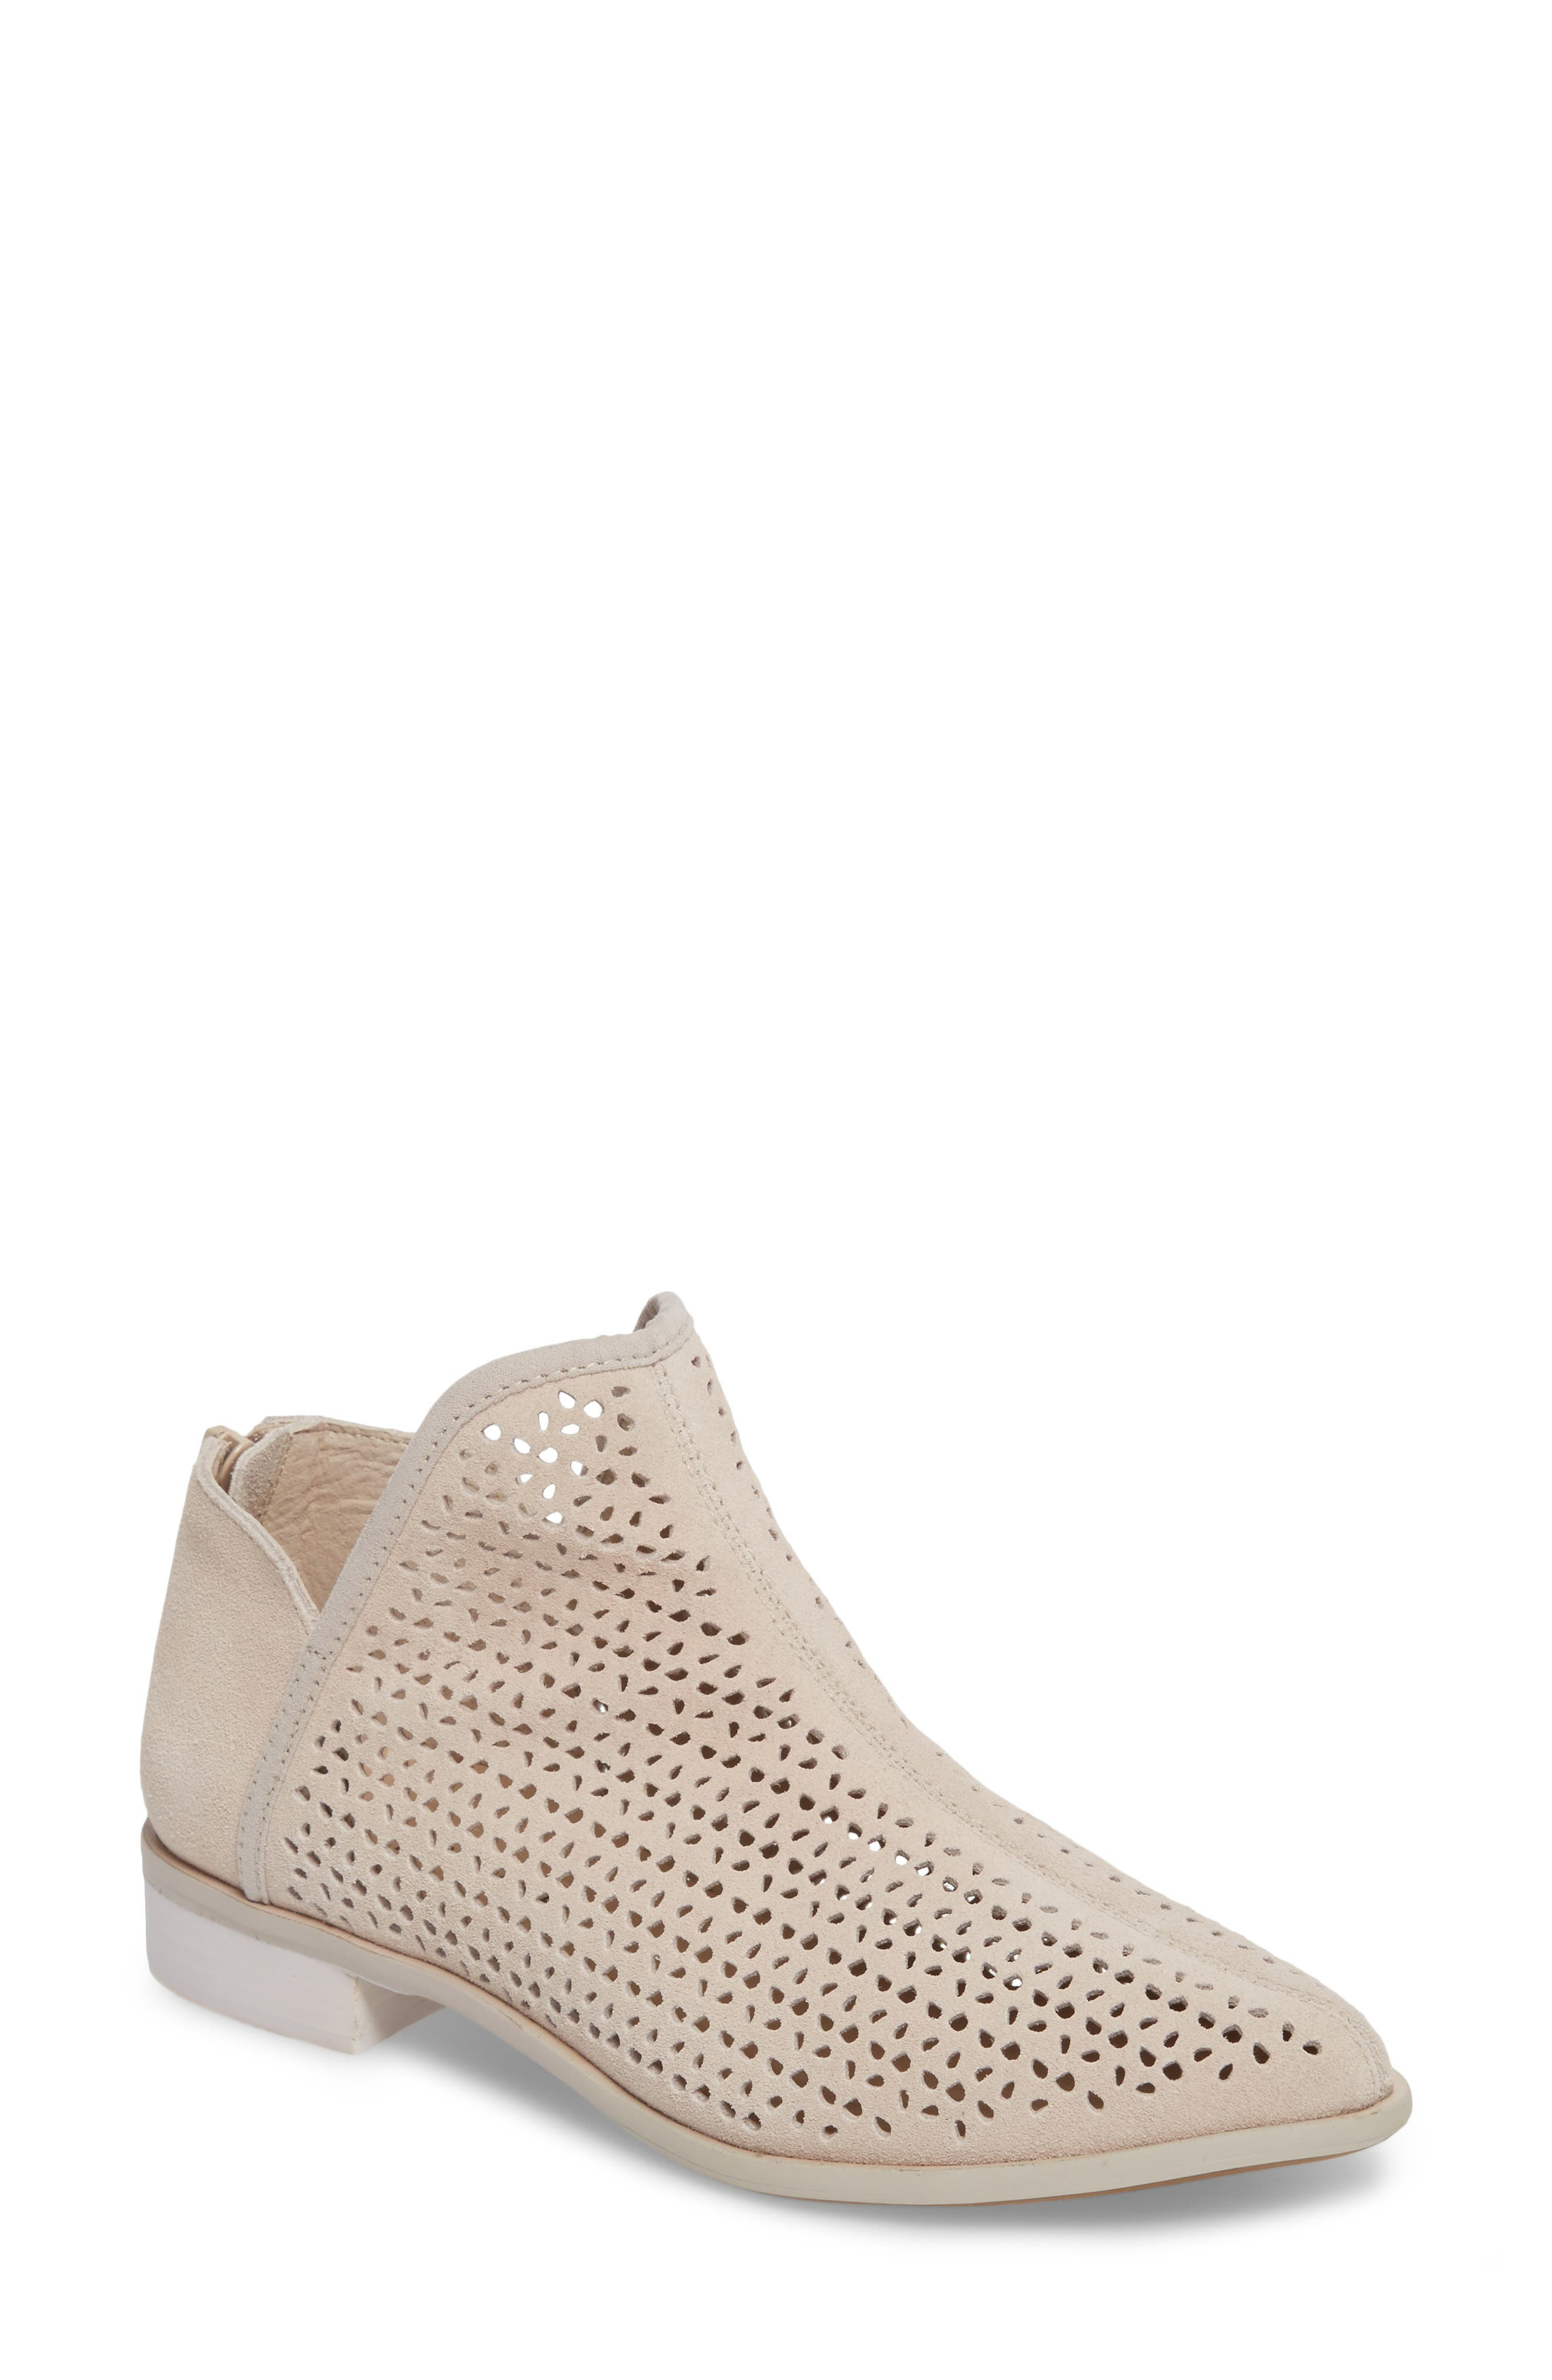 Alley Perforated Bootie,                         Main,                         color, Wheat